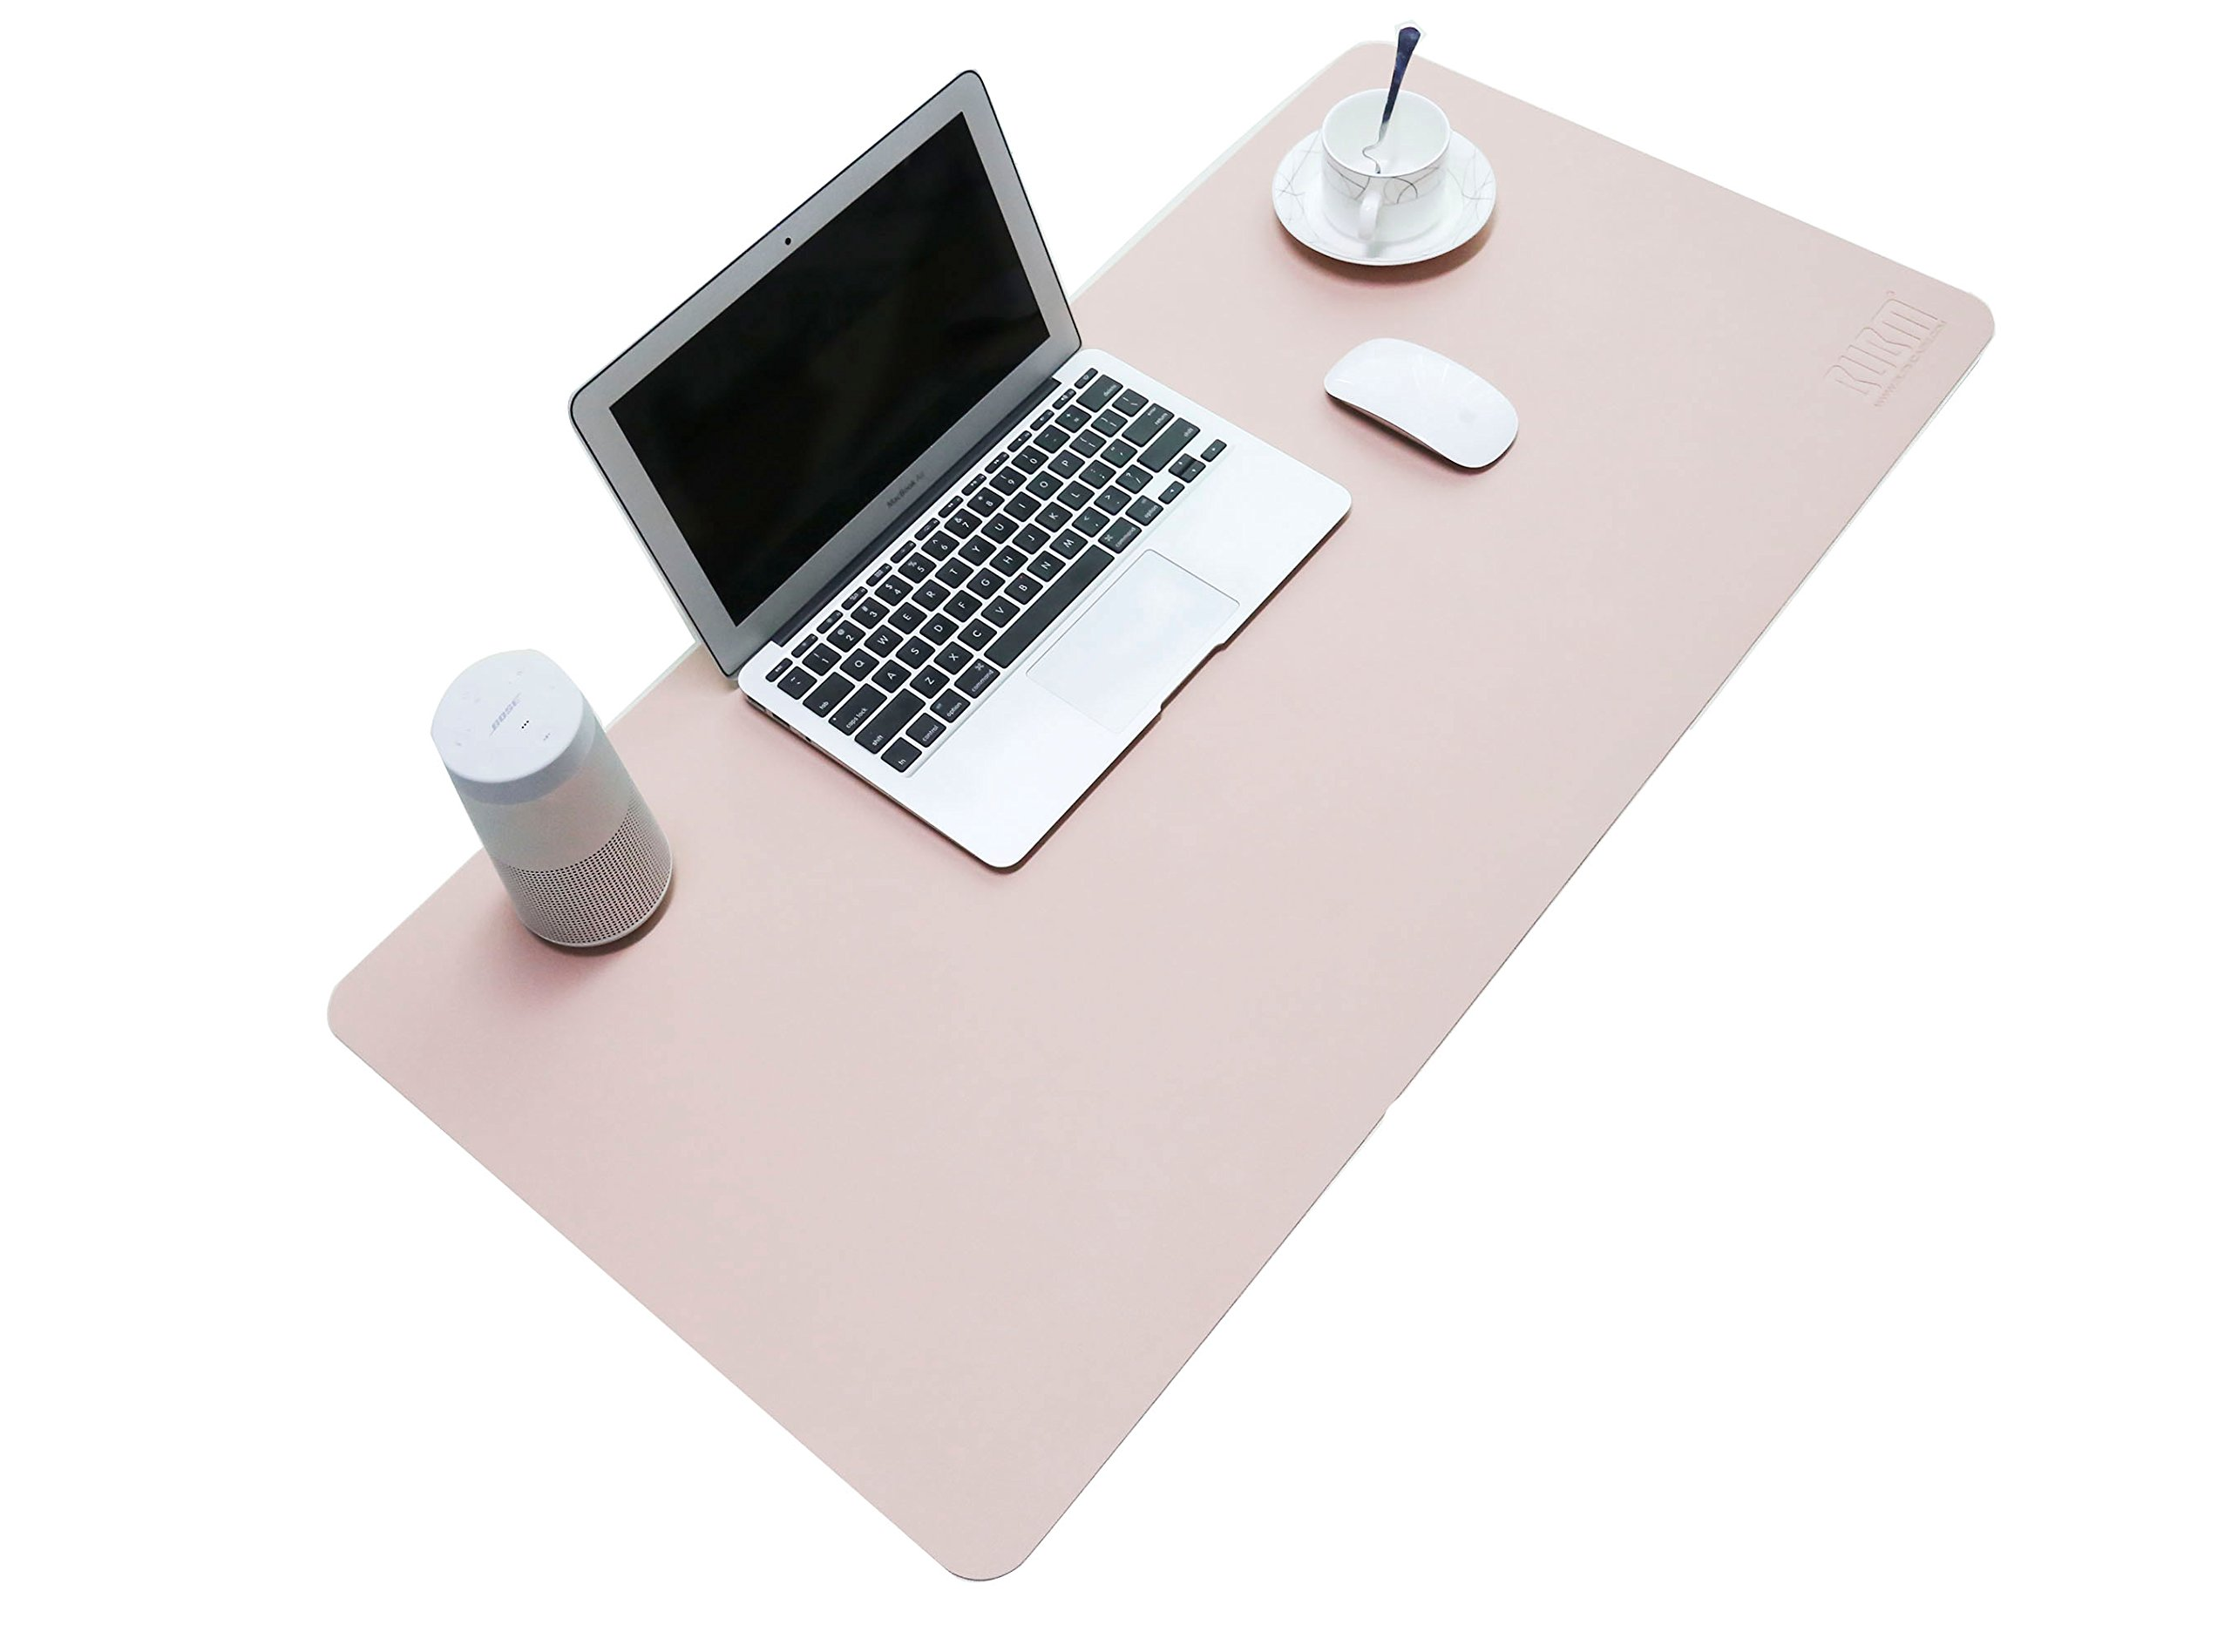 BUBM PU Leather Mouse Pad Mat Waterproof, Perfect Desk Writing Mat for Office and Home,Ultra Thin 2mm - 31.5''x15.8'' (Pink)